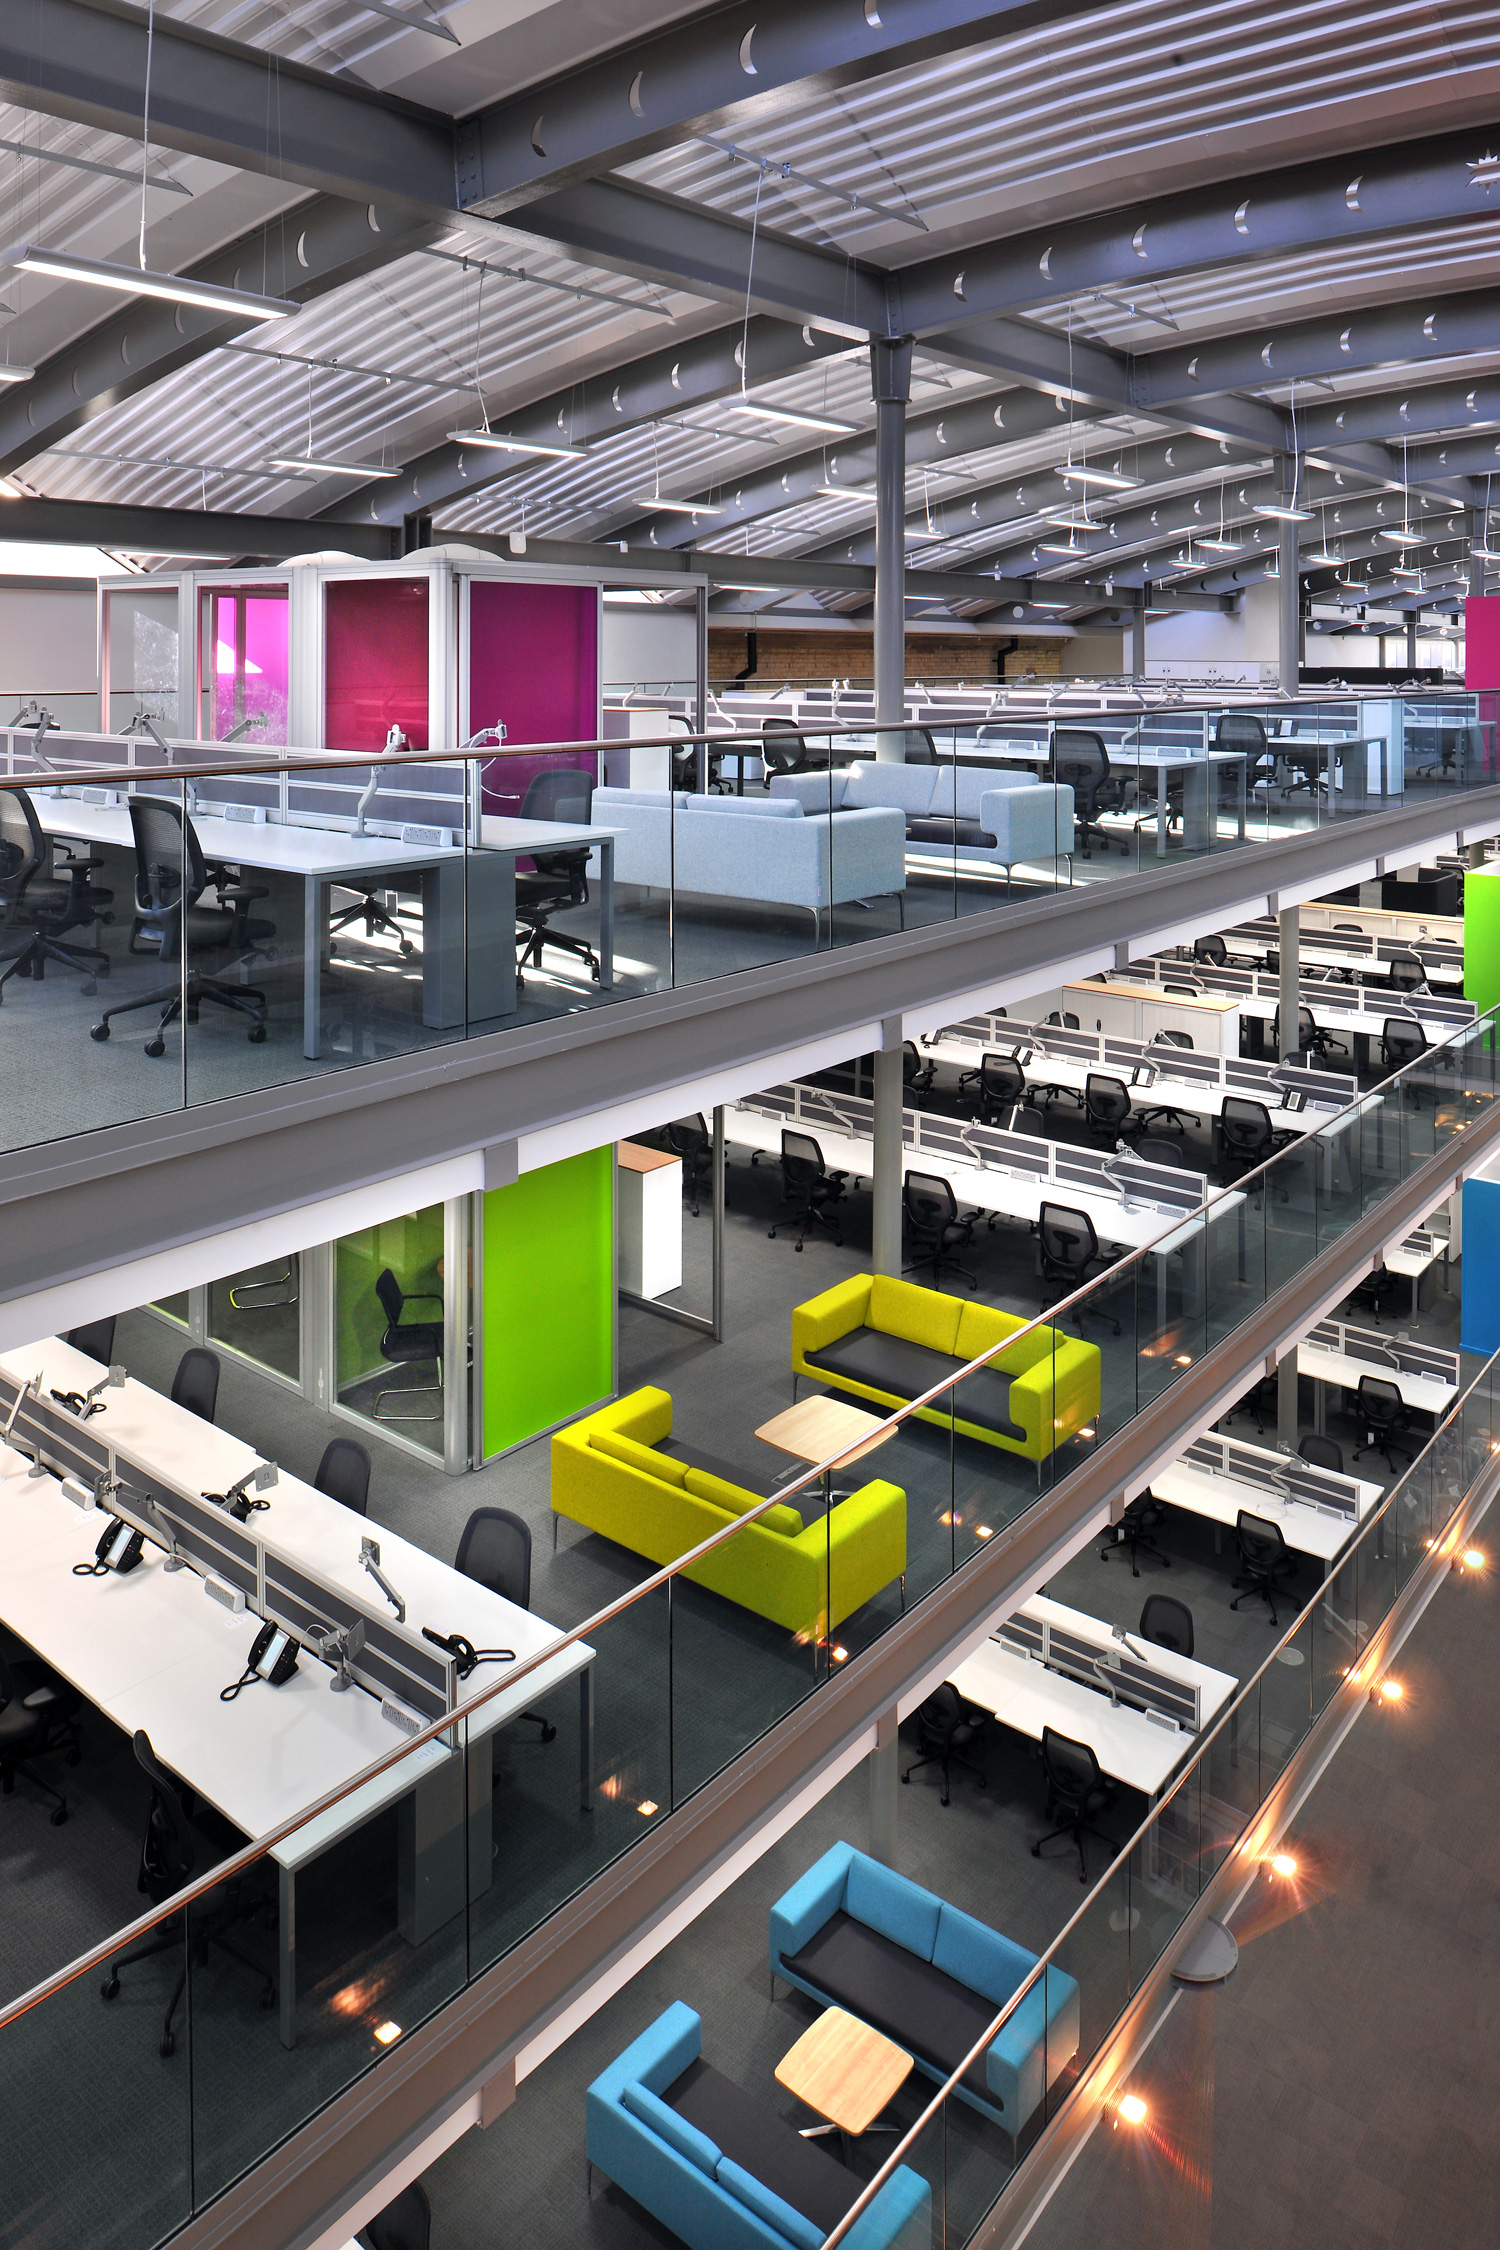 Blue, green and pink office furniture on different levels